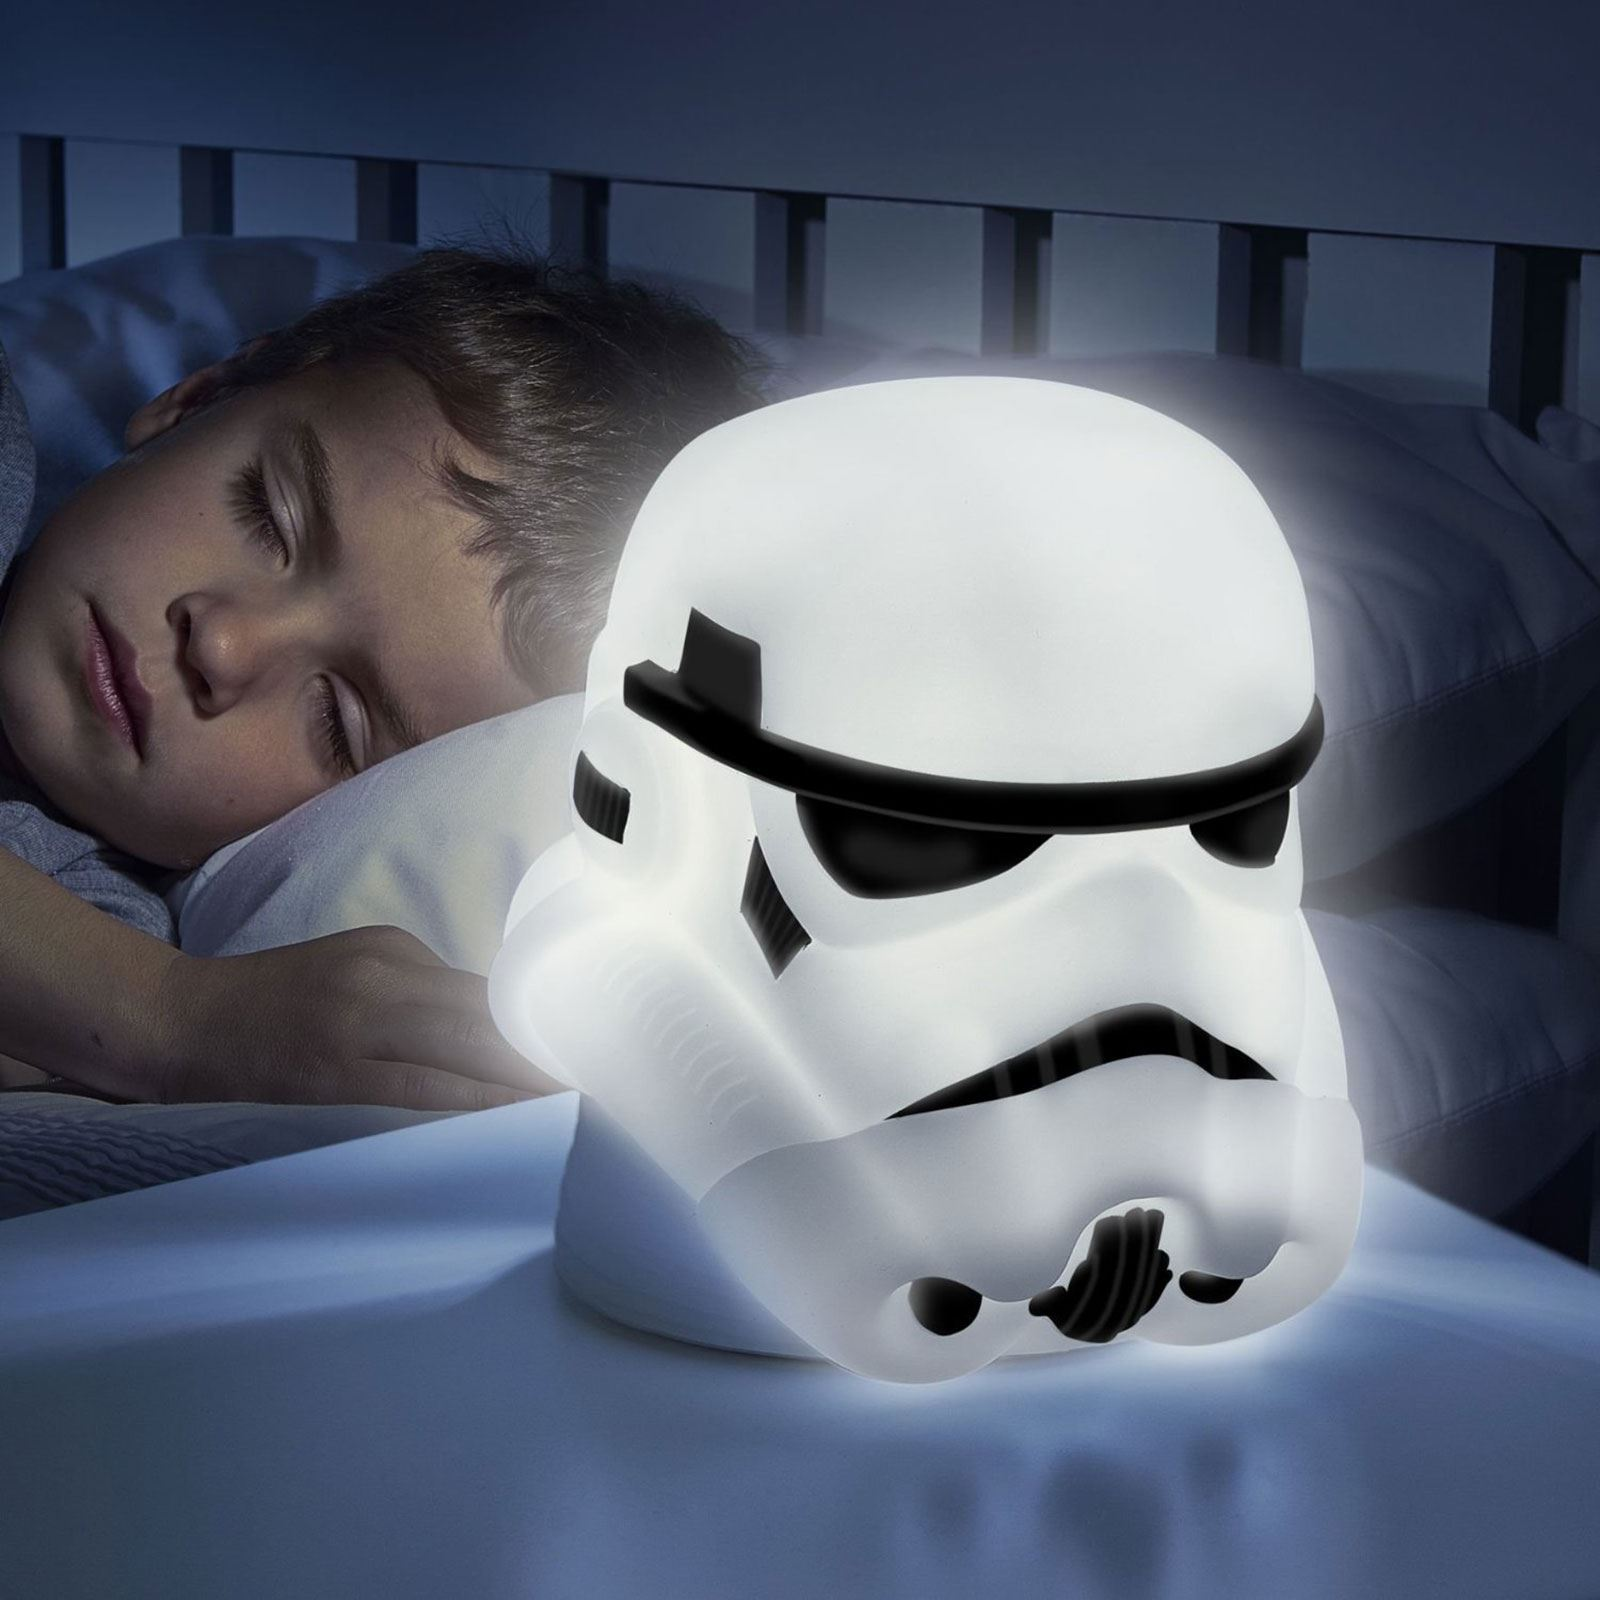 Star wars bedroom lighting night light ceiling shade torch for Bedroom night light